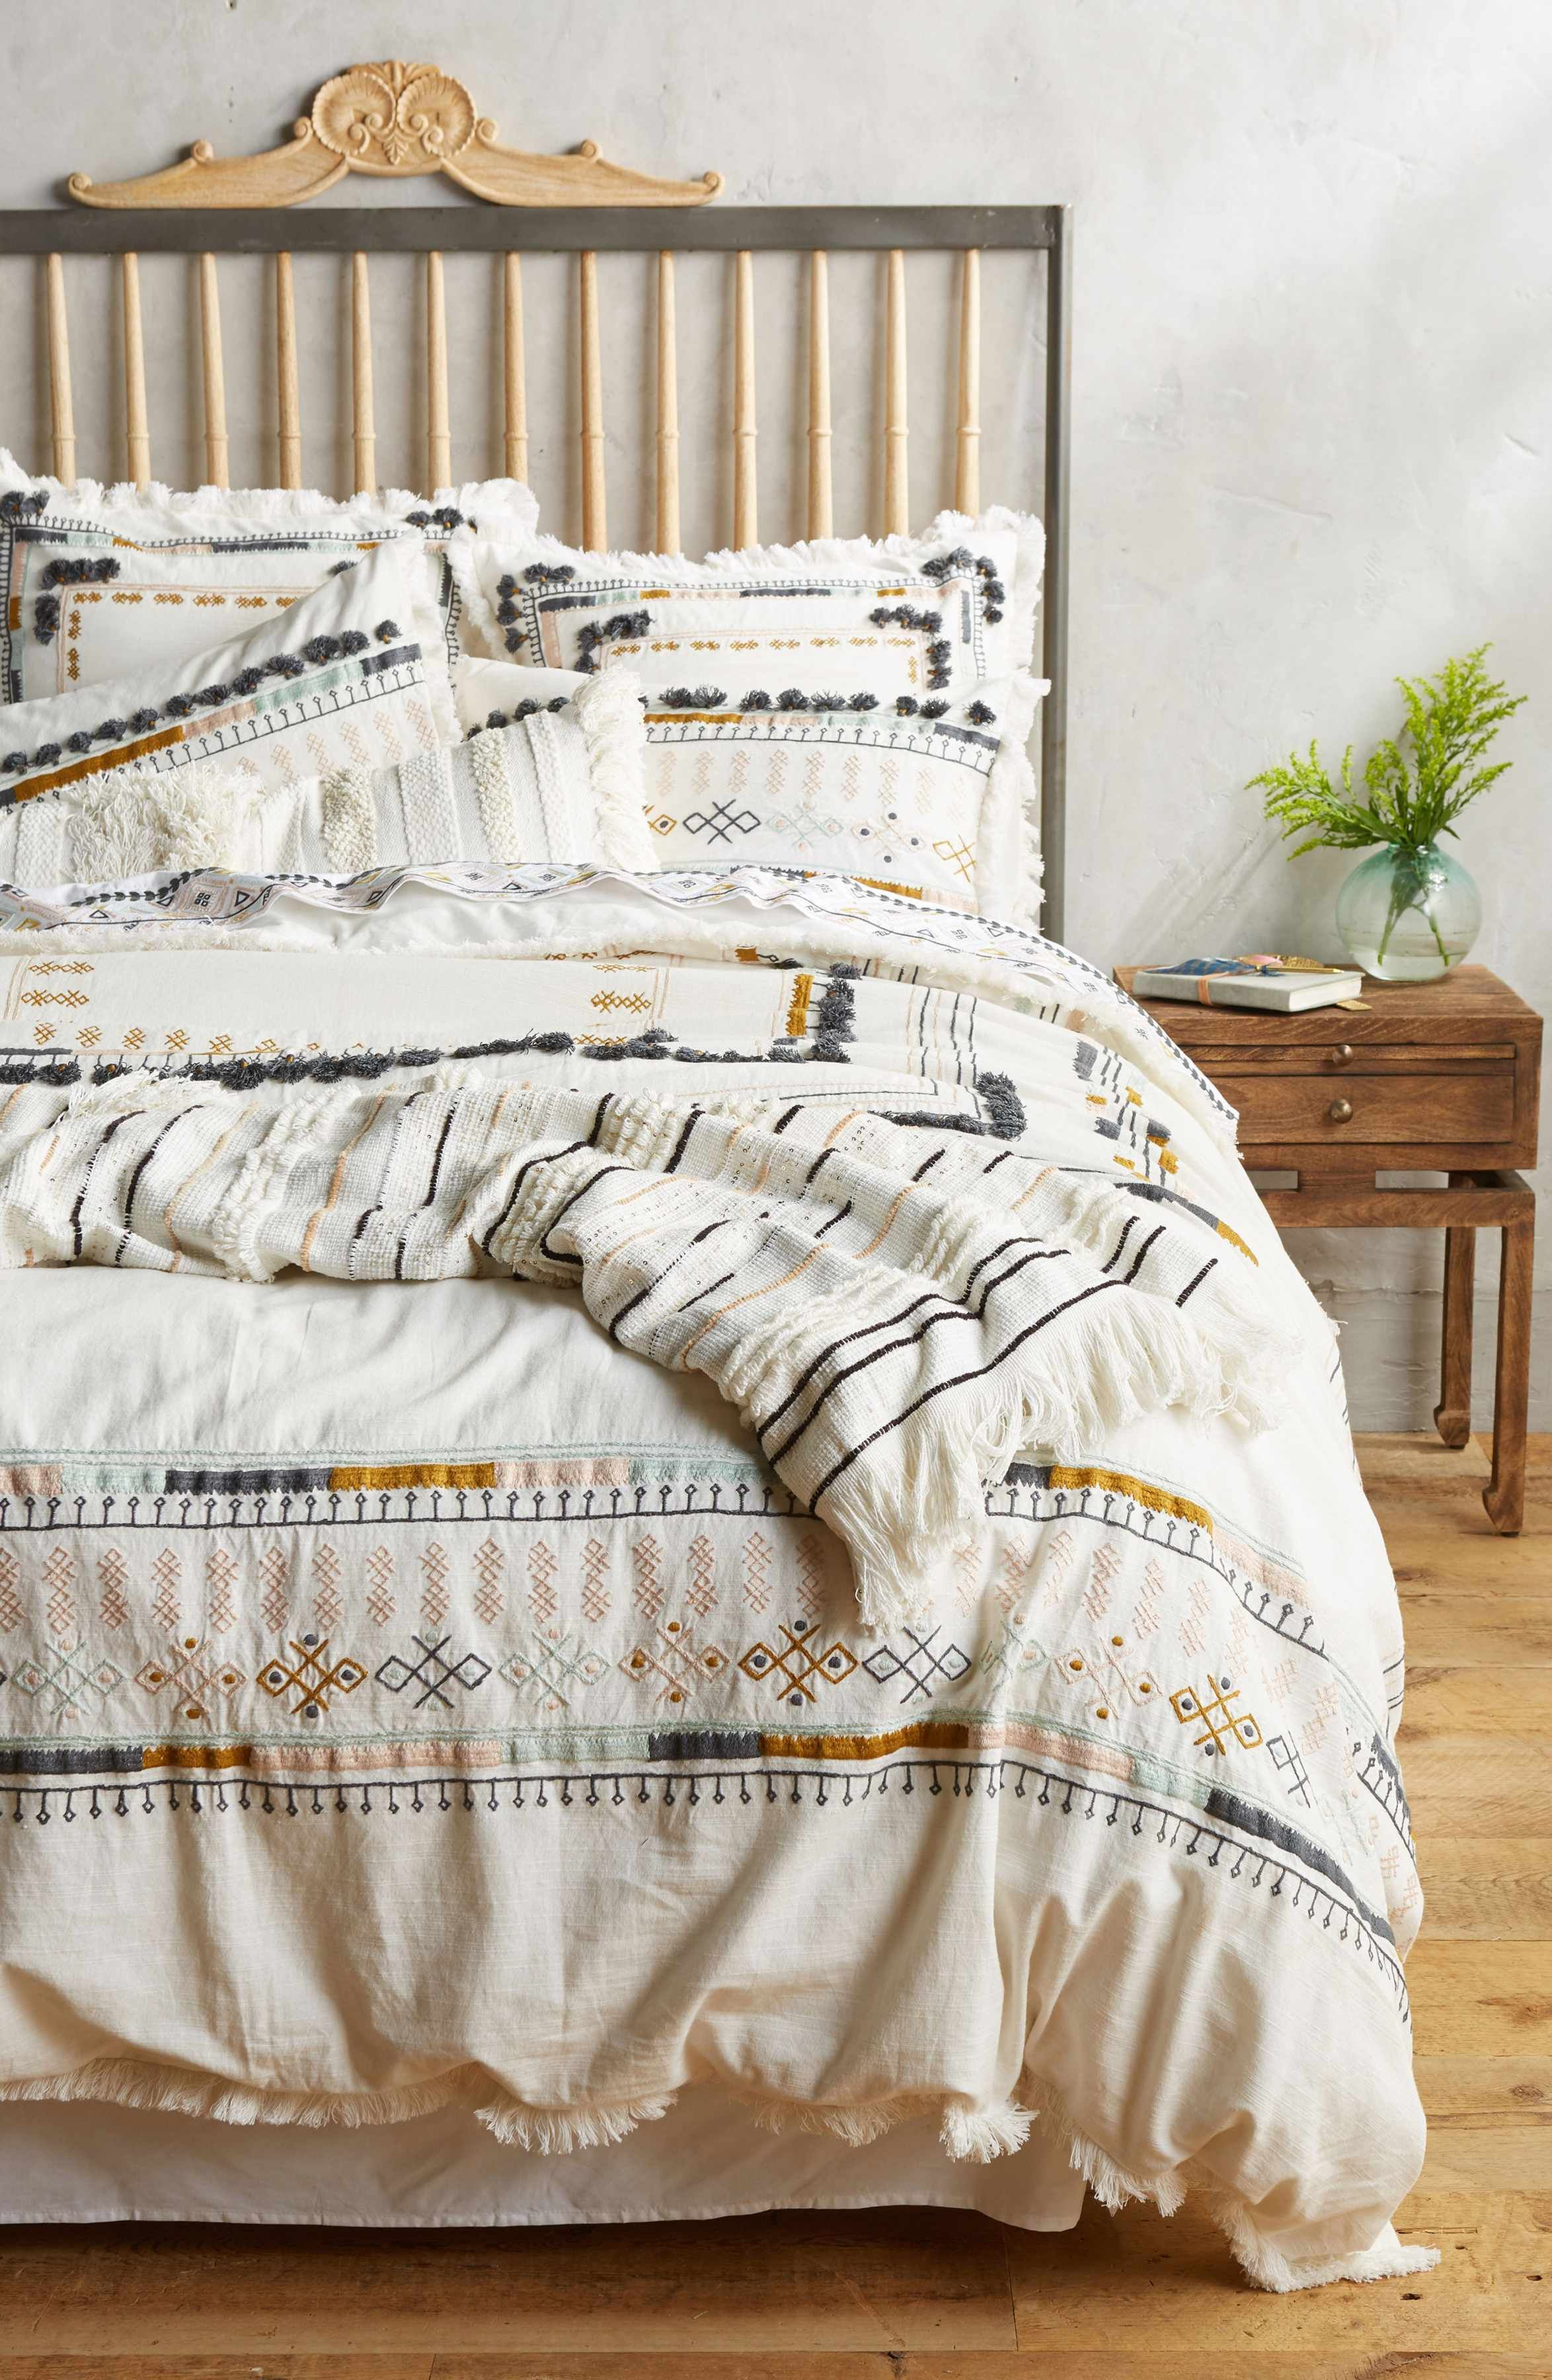 Anthropologie Kessabine Duvet Cover Interieur Slaapkamer Lakens